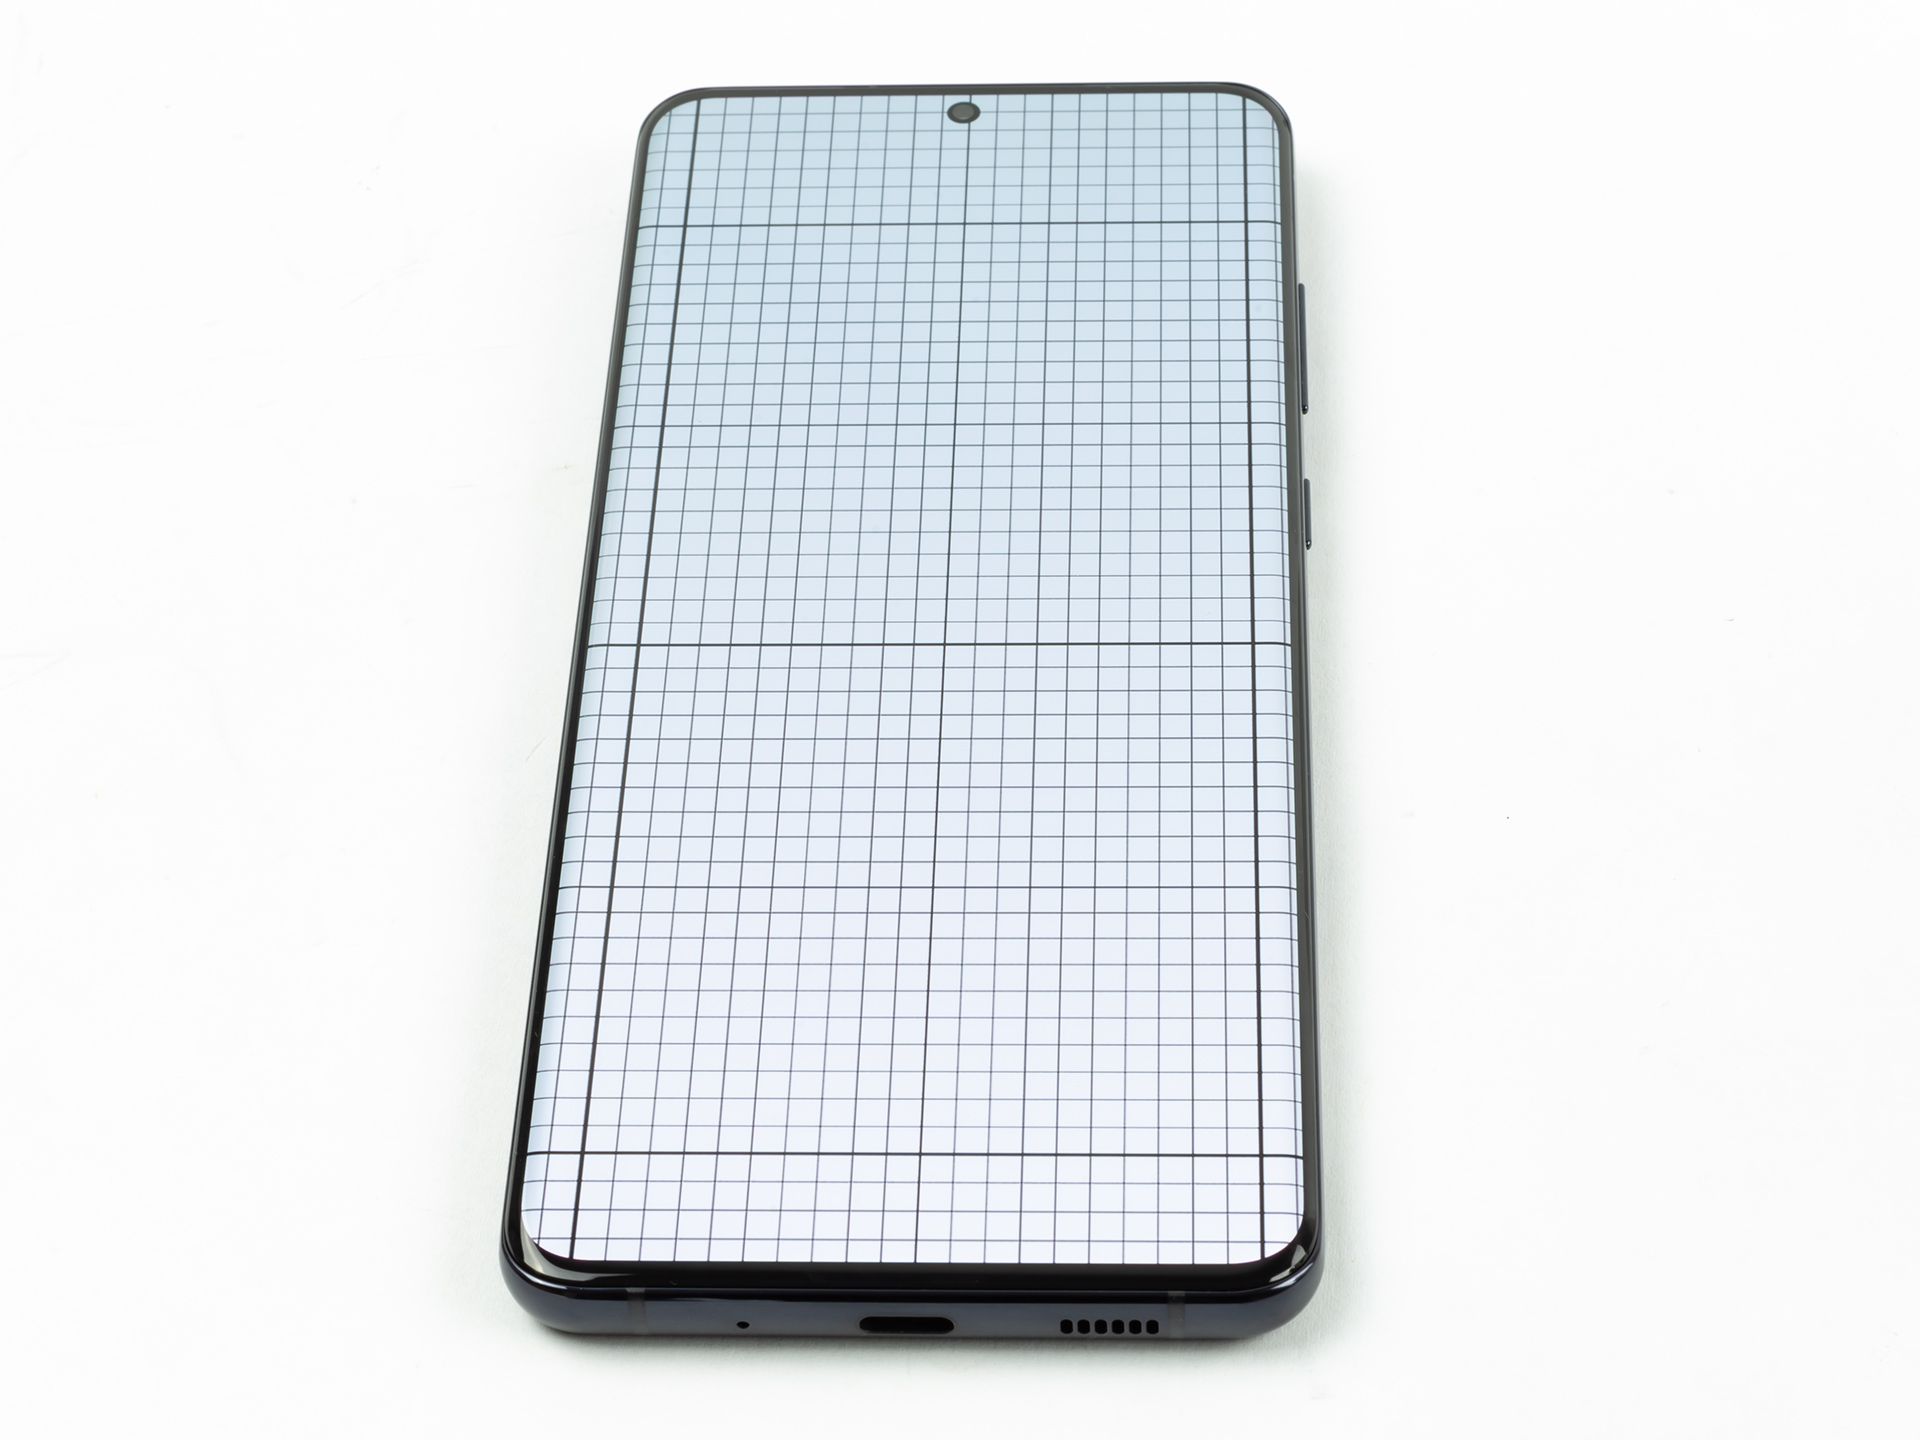 This is meant to show how the screen curves. You'll only see the grid distort very close to the sides.